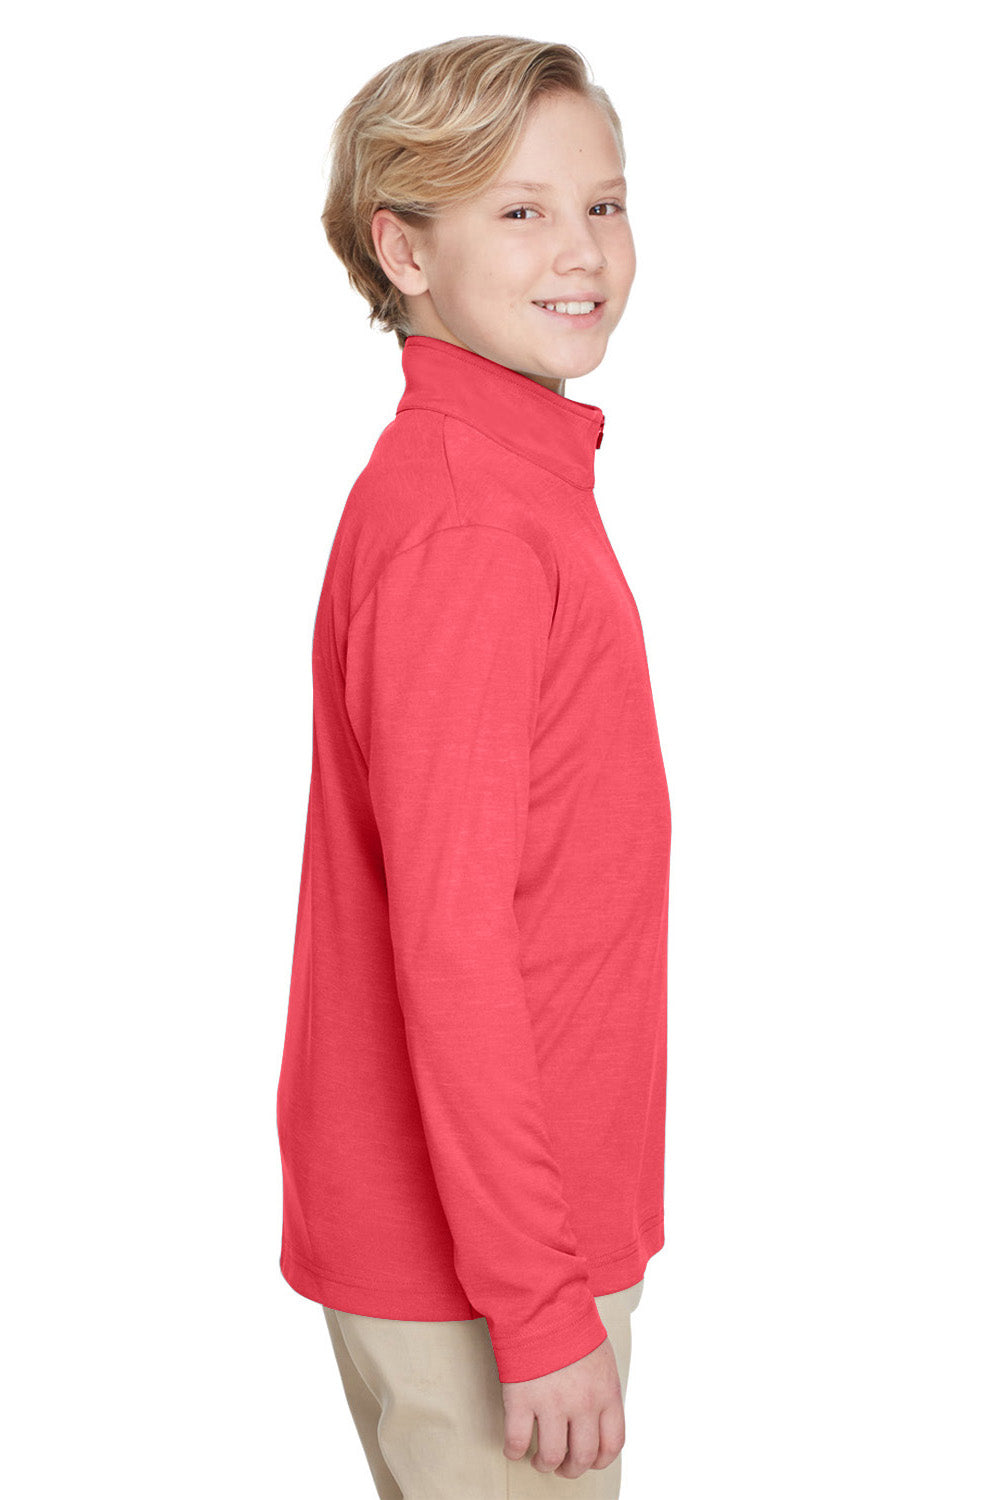 Team 365 TT31HY Youth Zone Sonic Performance Moisture Wicking 1/4 Zip Sweatshirt Red Side